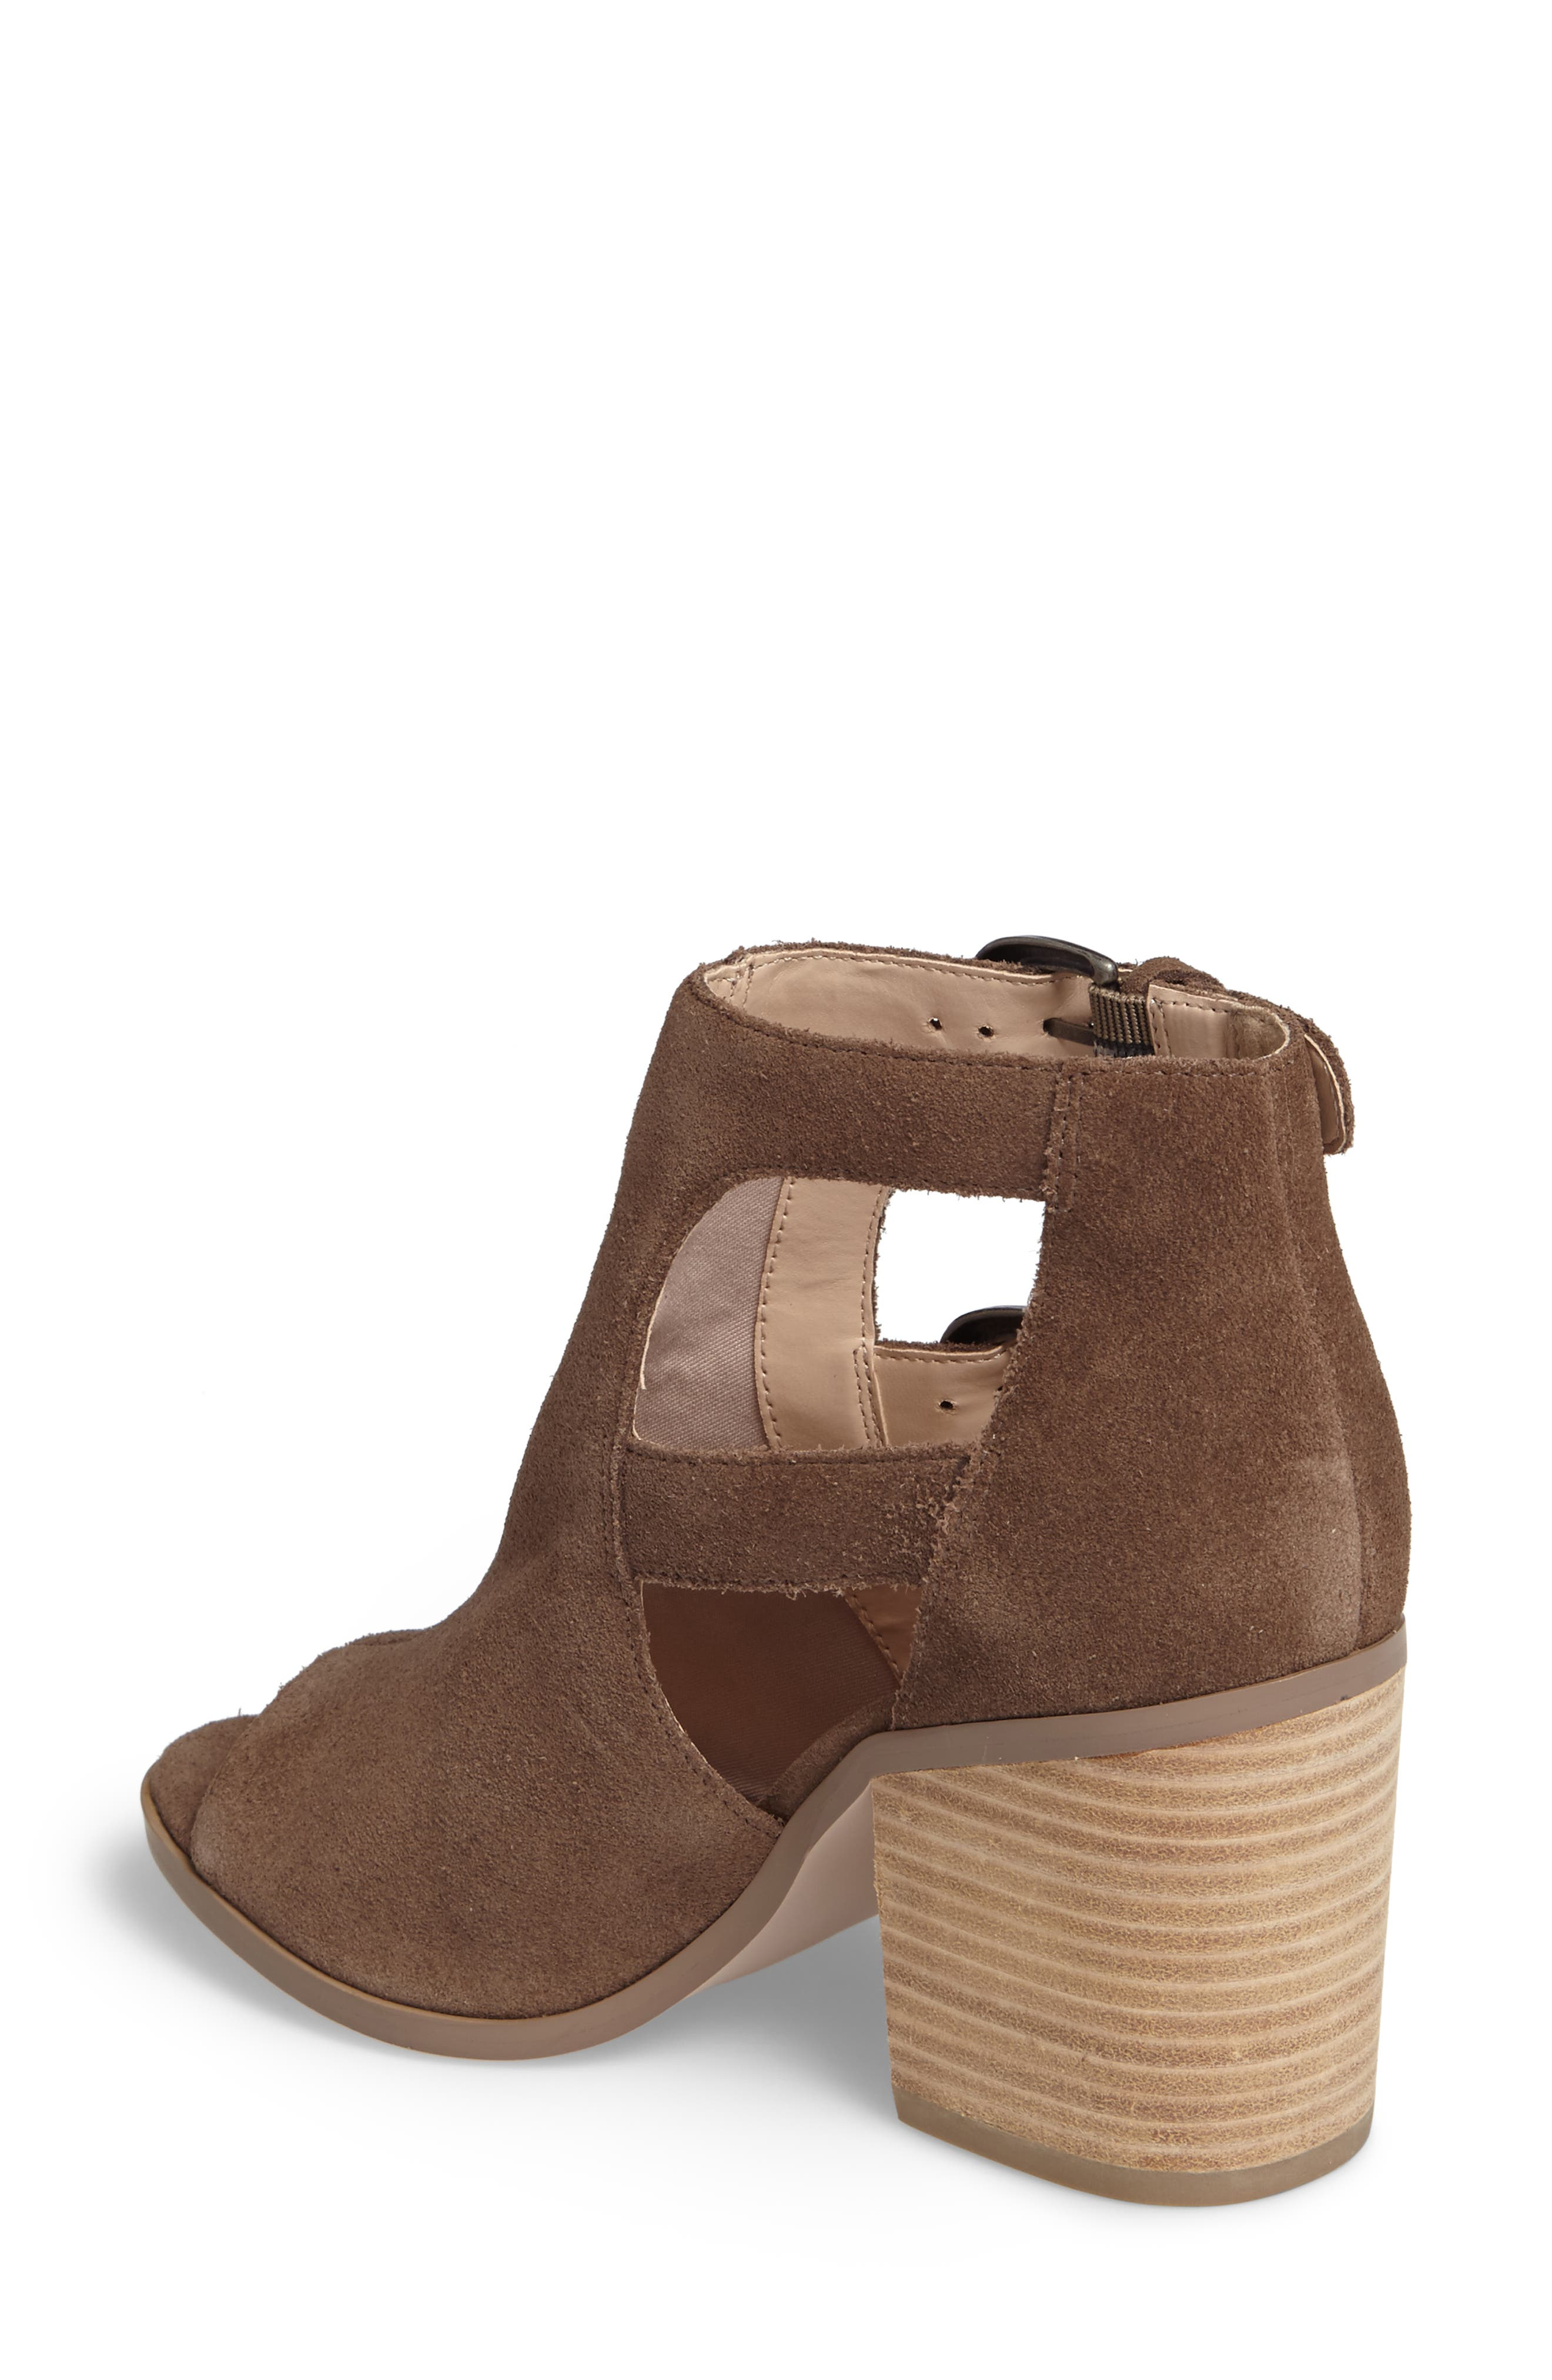 Alternate Image 2  - Sole Society Hyperion Peep Toe Bootie (Women)